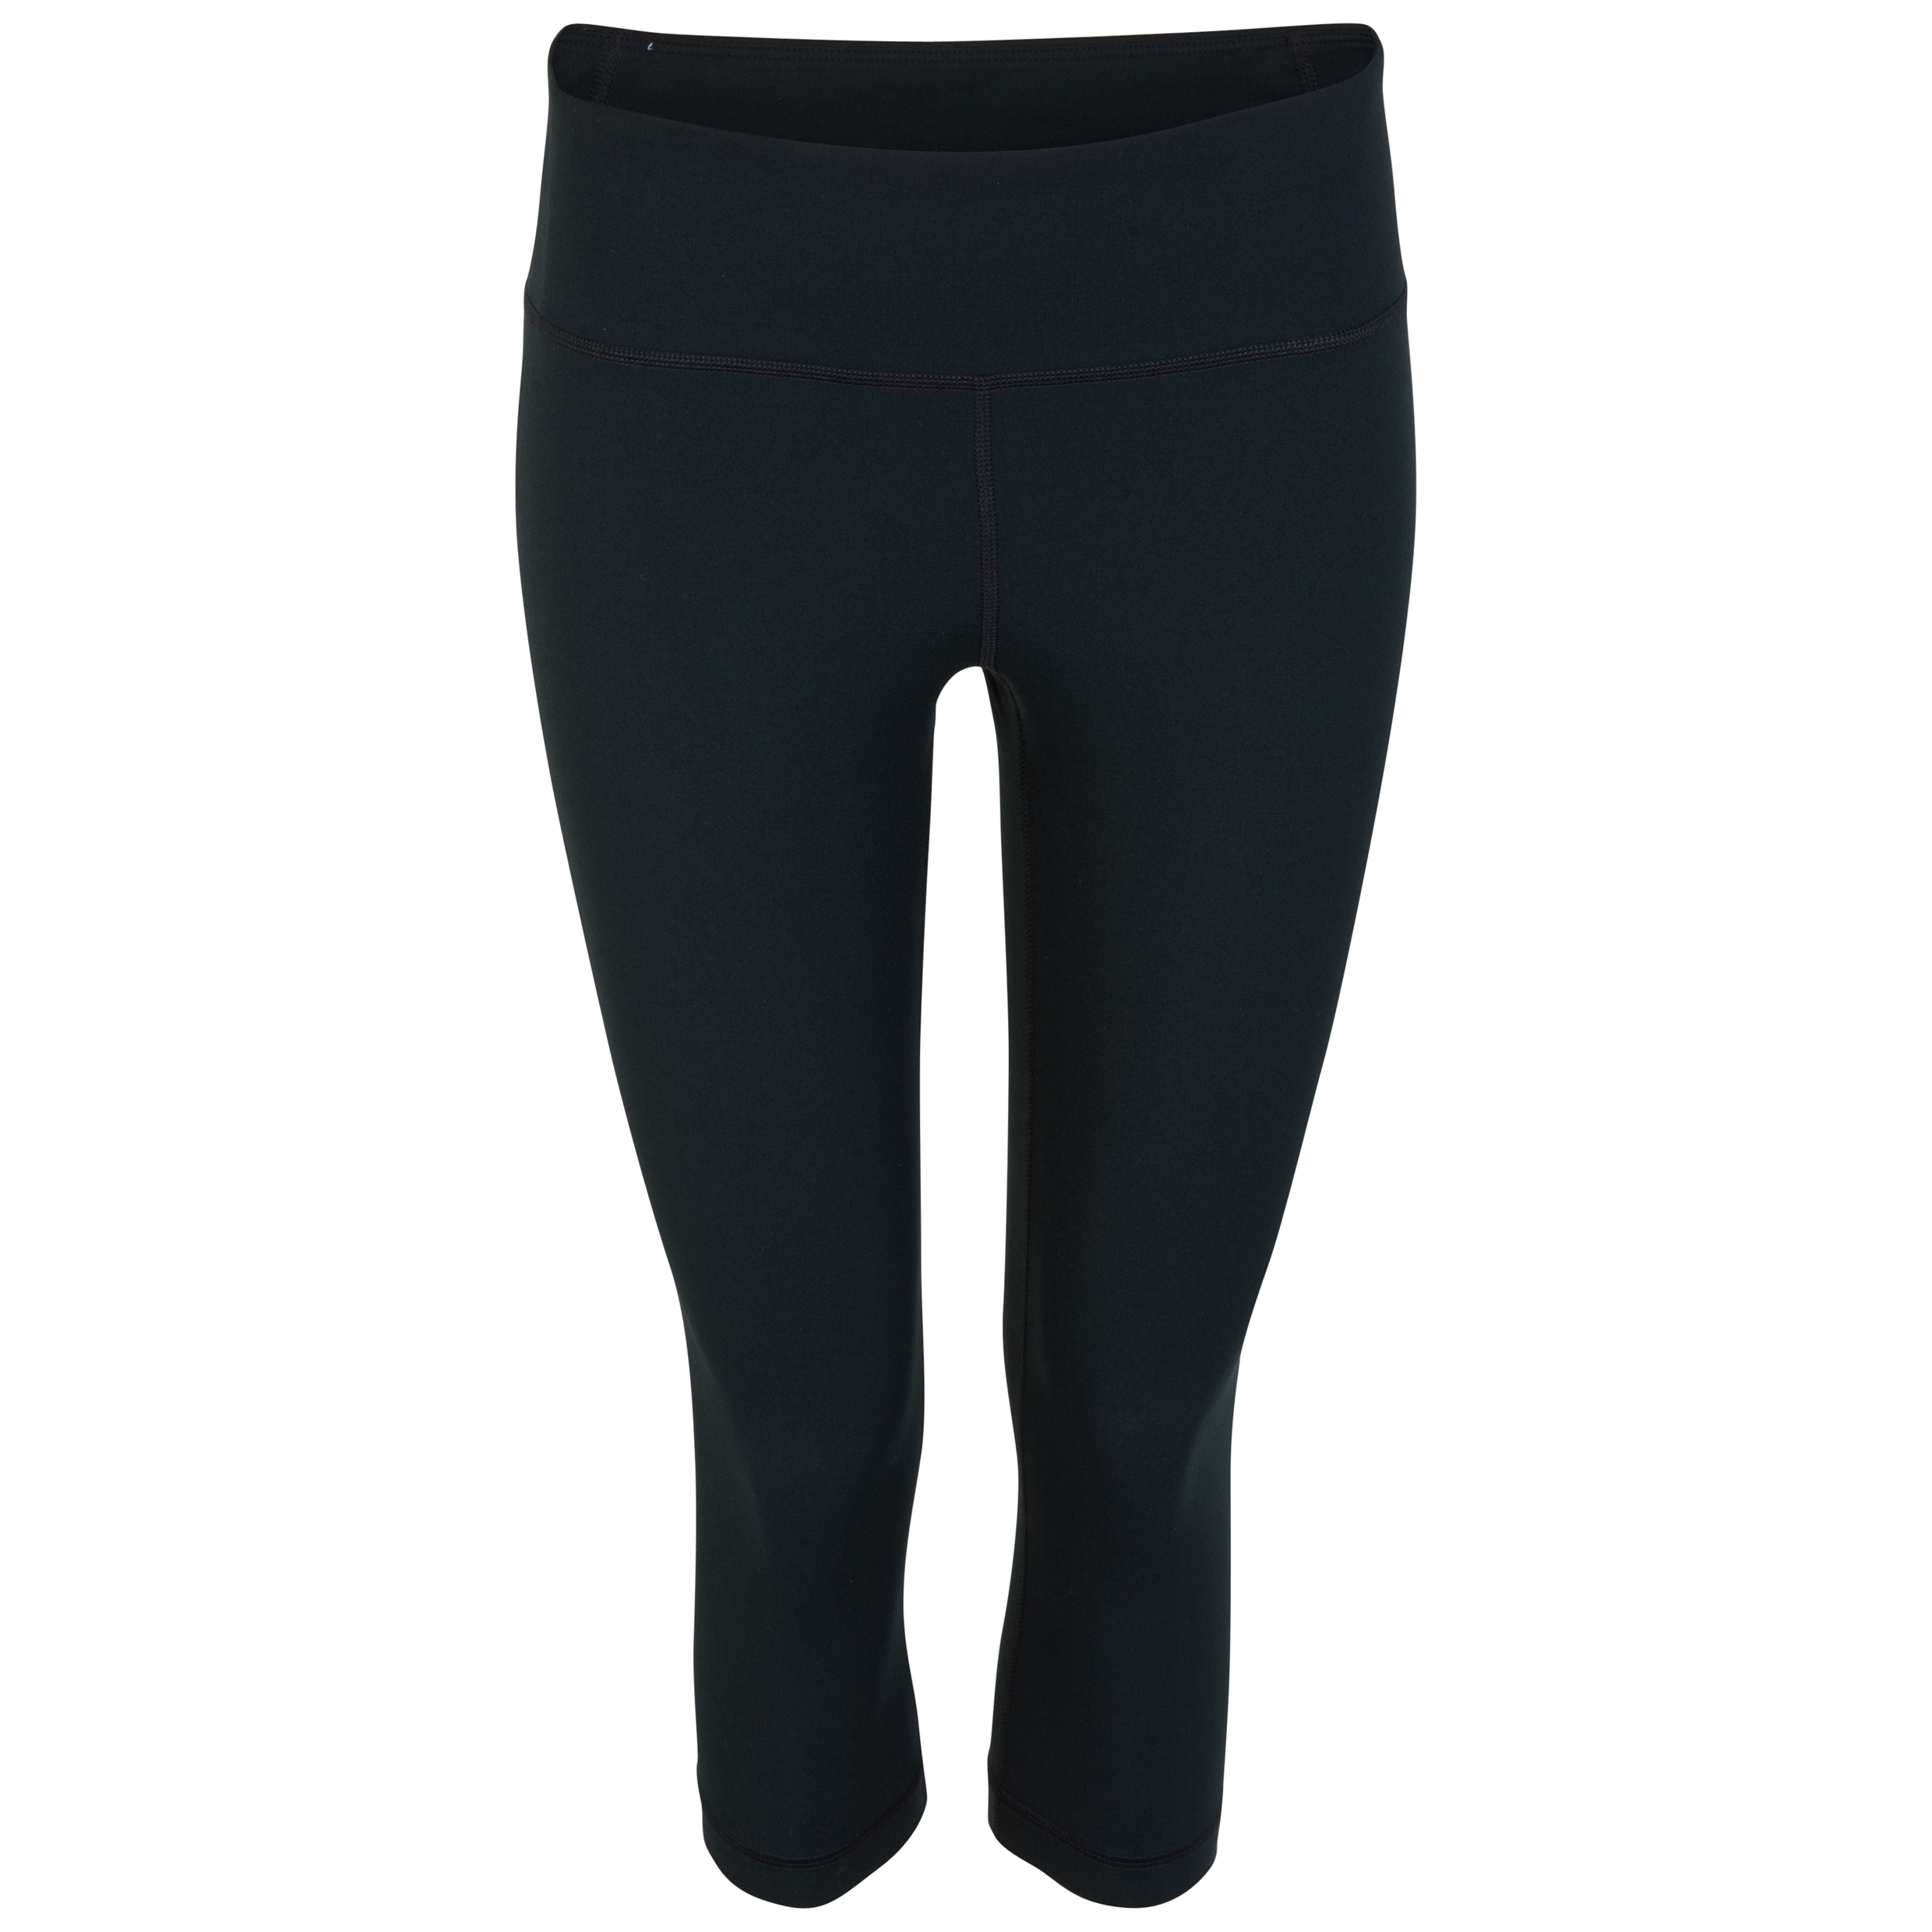 Lifestyle Perfect Tight Capri- Black/Metallic Black